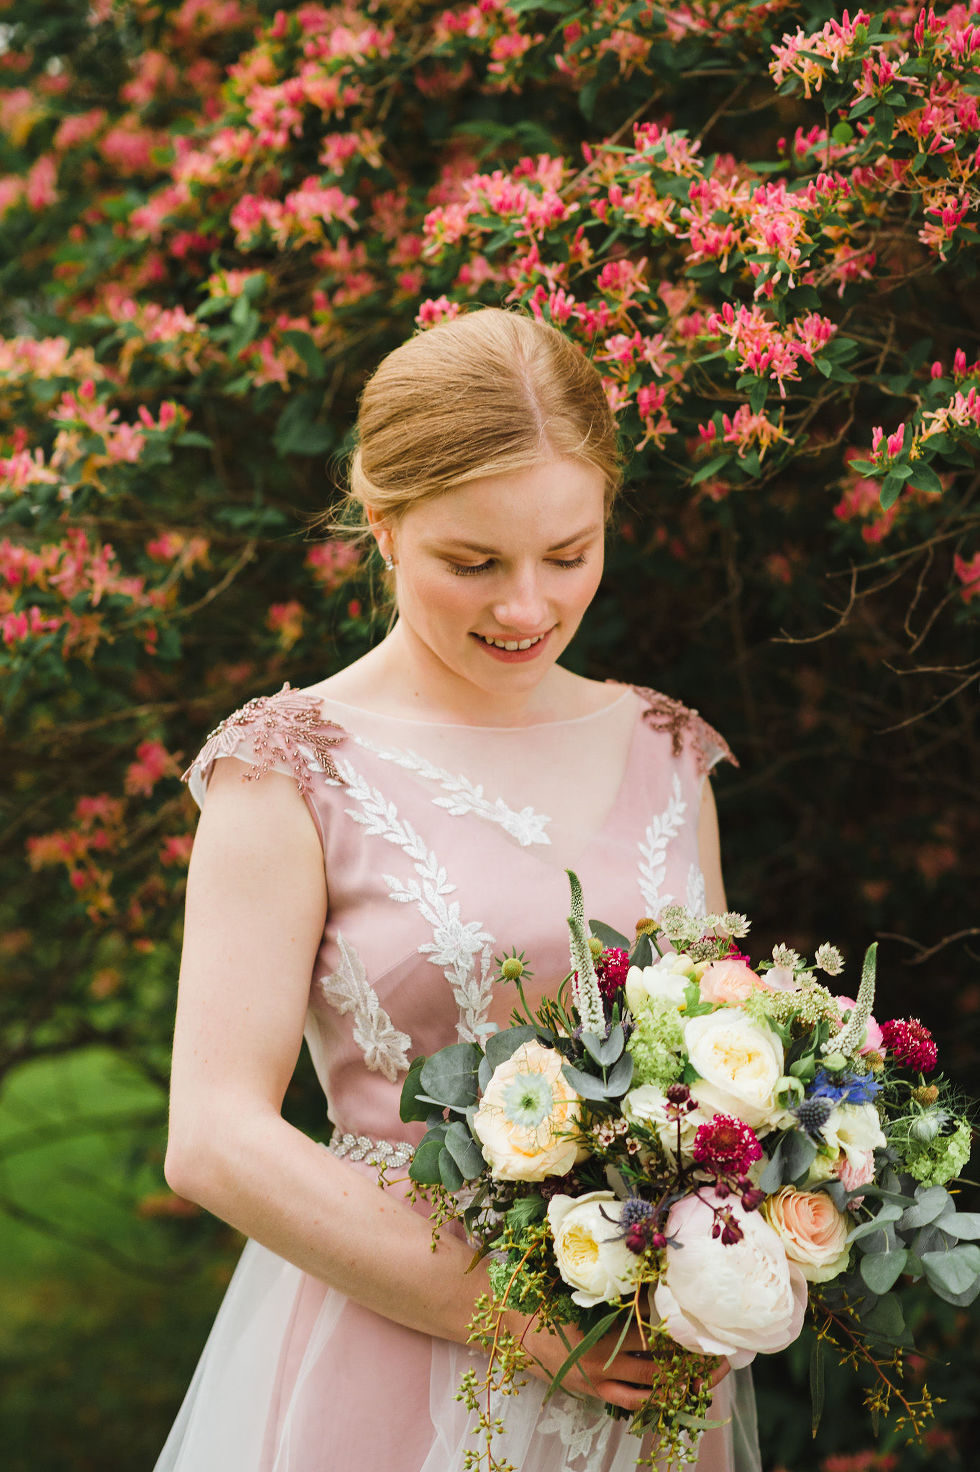 bride standing in front of a wall of colourful flowers holding a bouquet during her charming southern style wedding at Ruthven National Historic Site near Hamilton